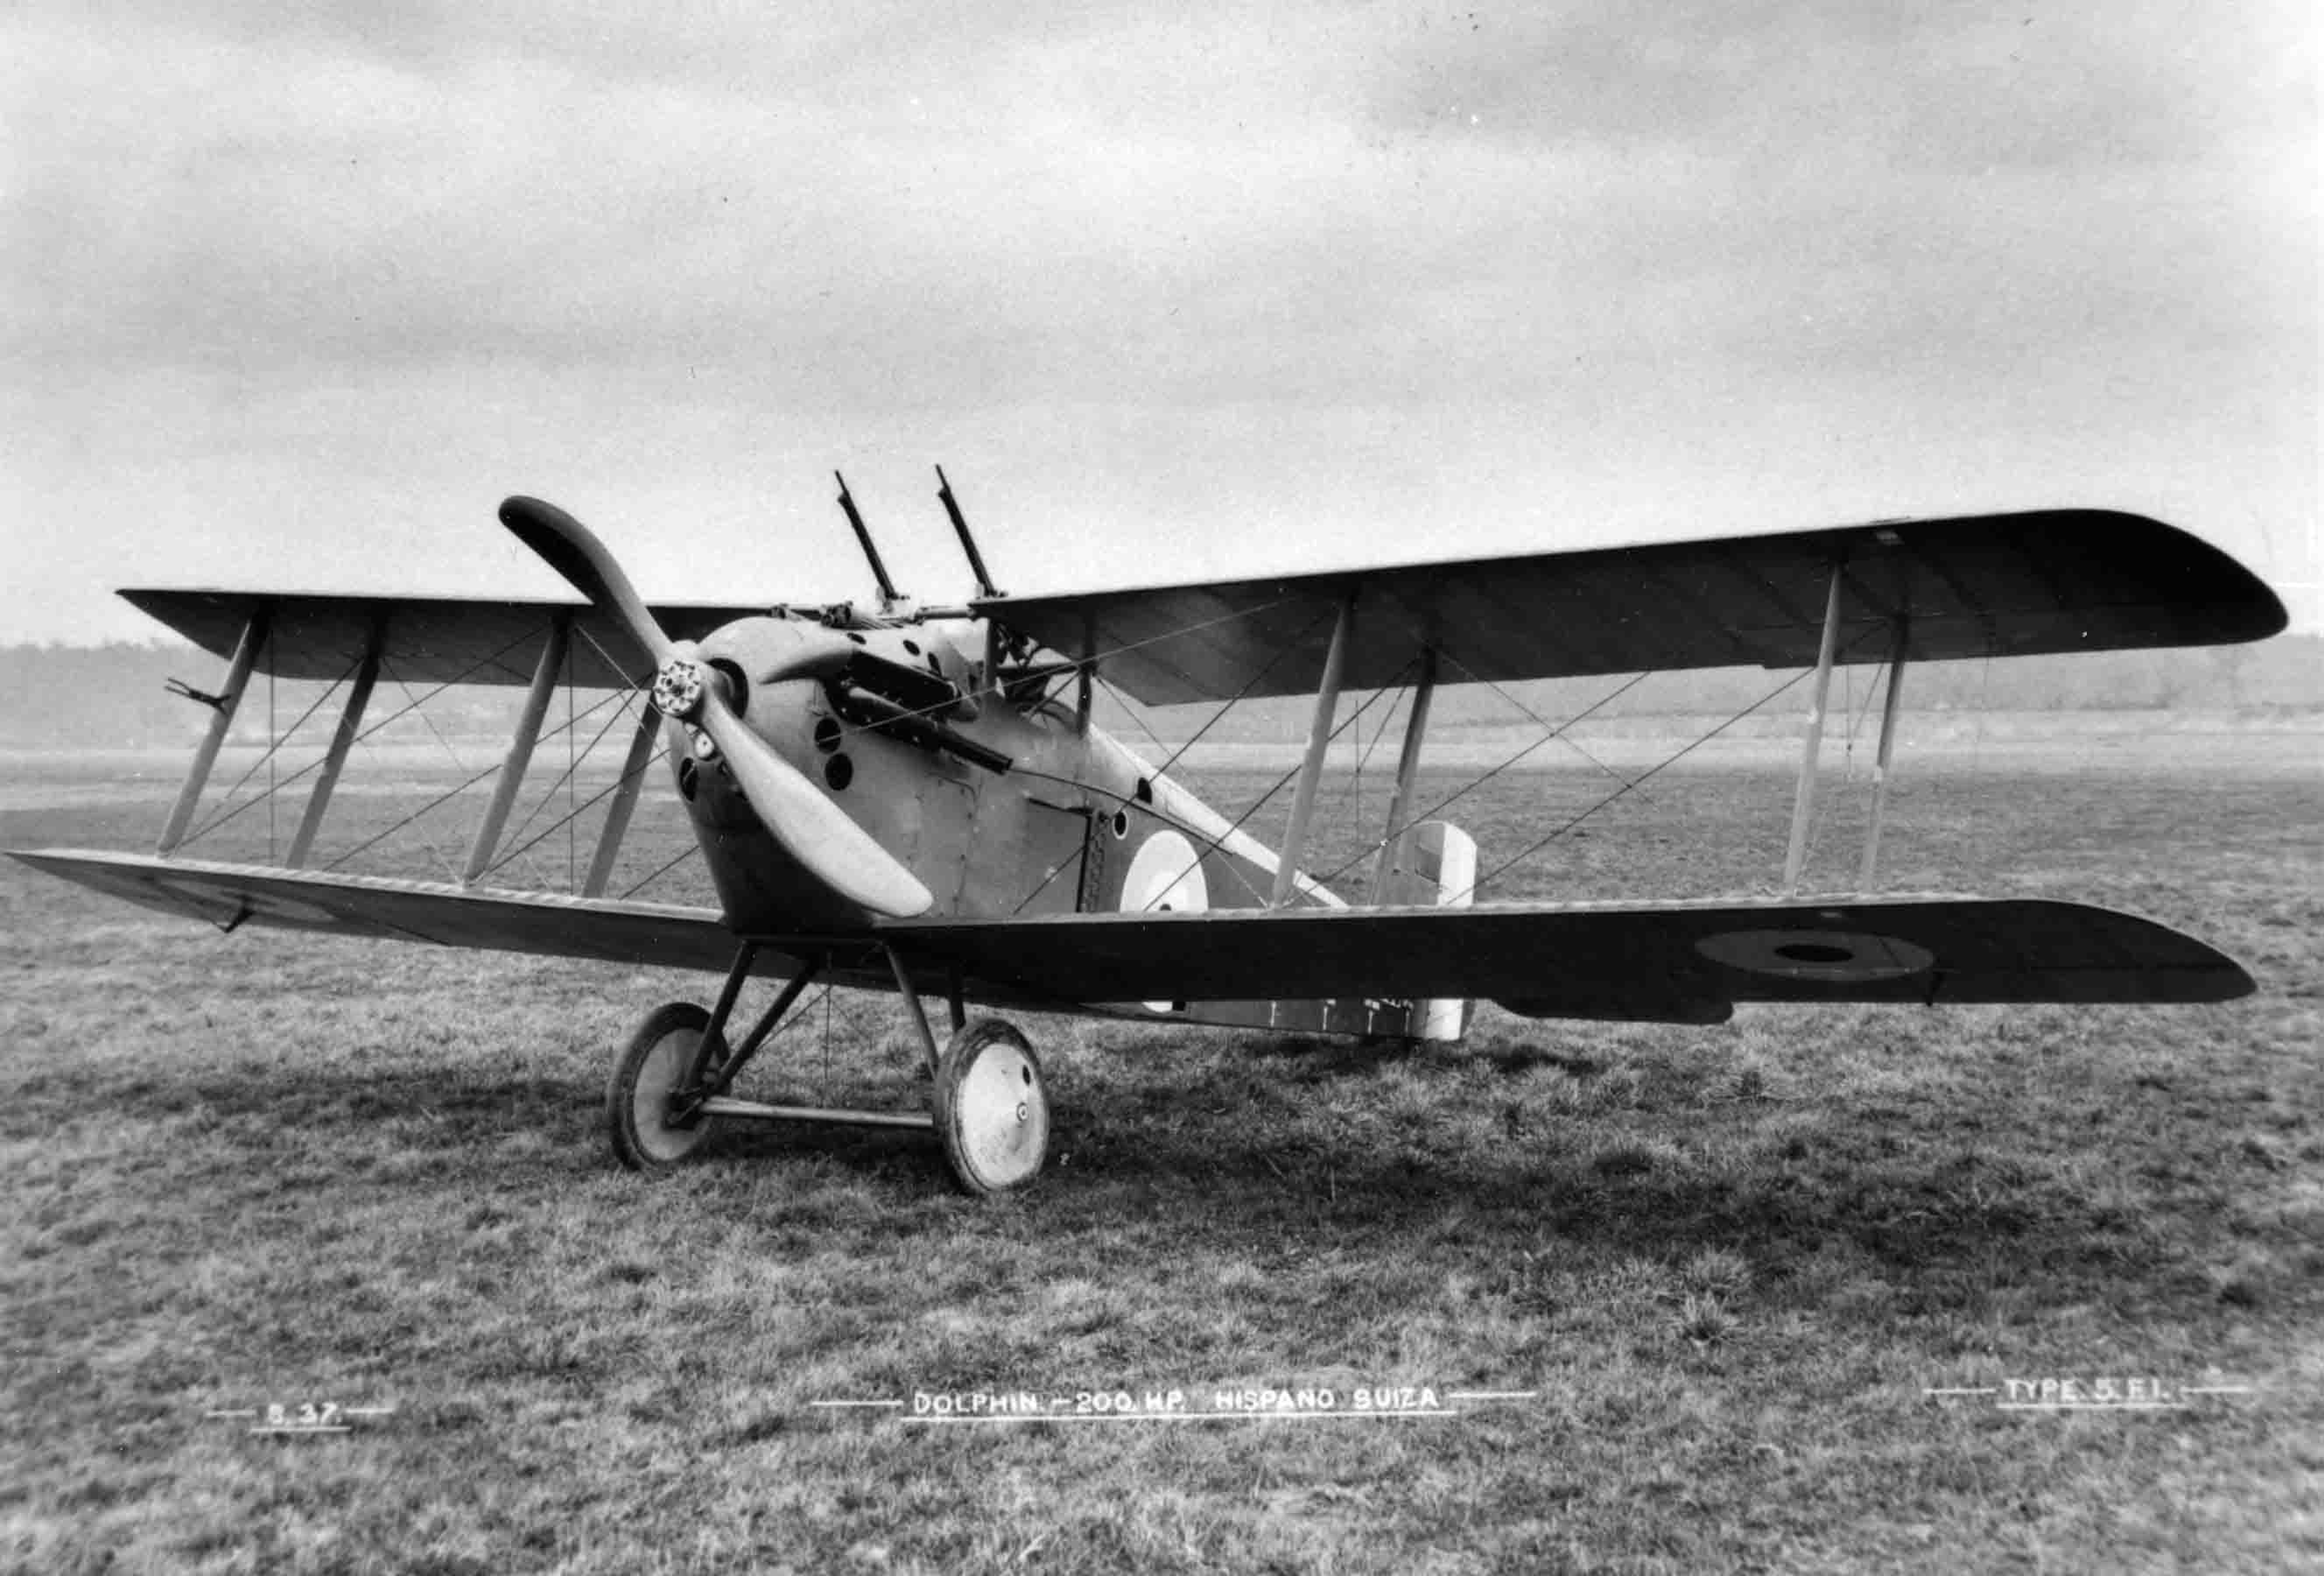 X003-2602/16006: A Sopwith Dolphin fitted with two Lewis guns, at Brooklands, probably during 1917.